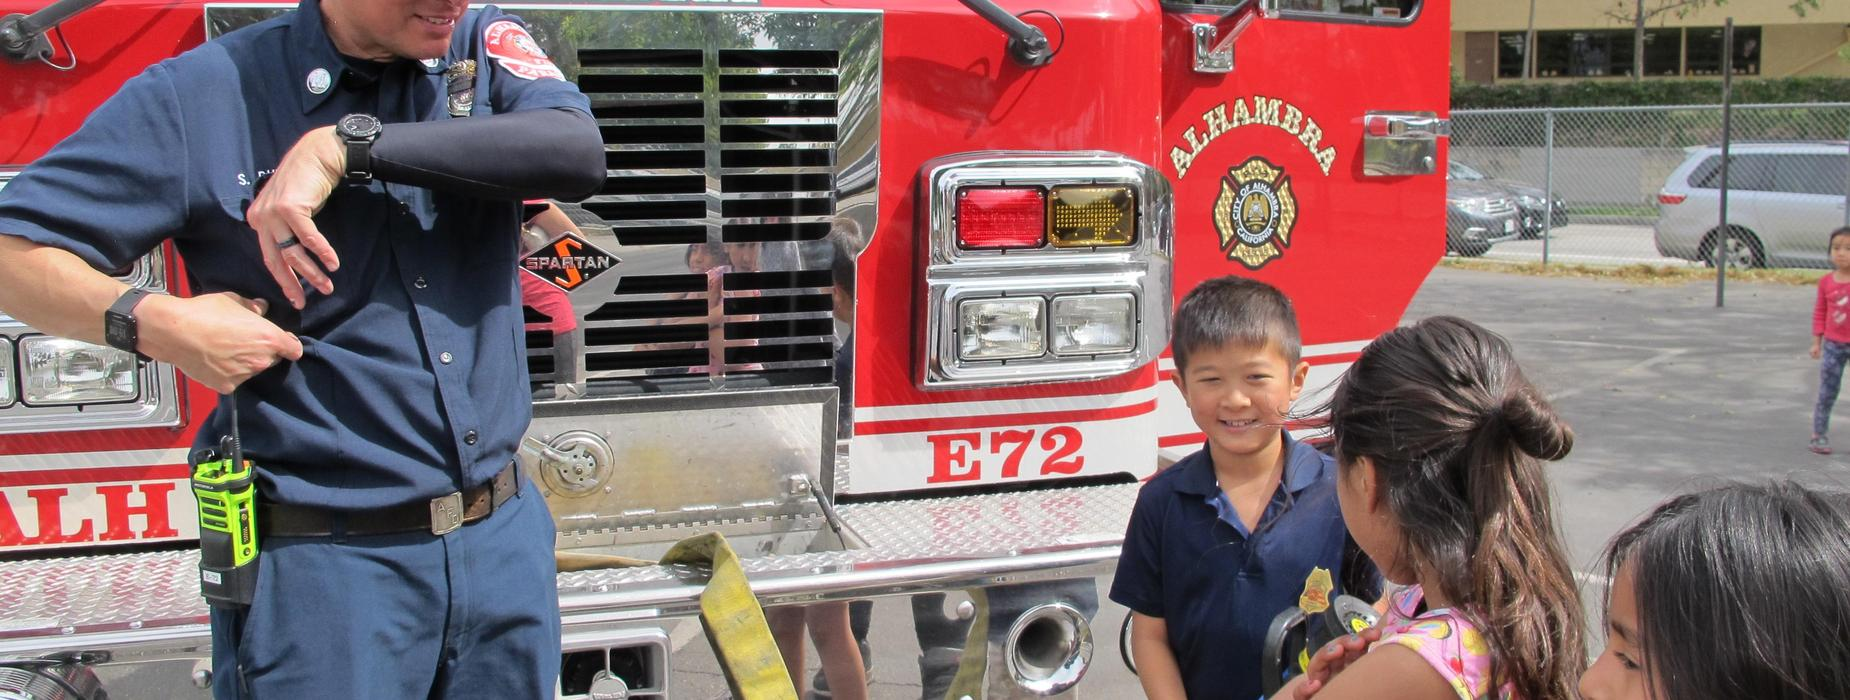 Marguerita students and Alhambra firefighter during school event